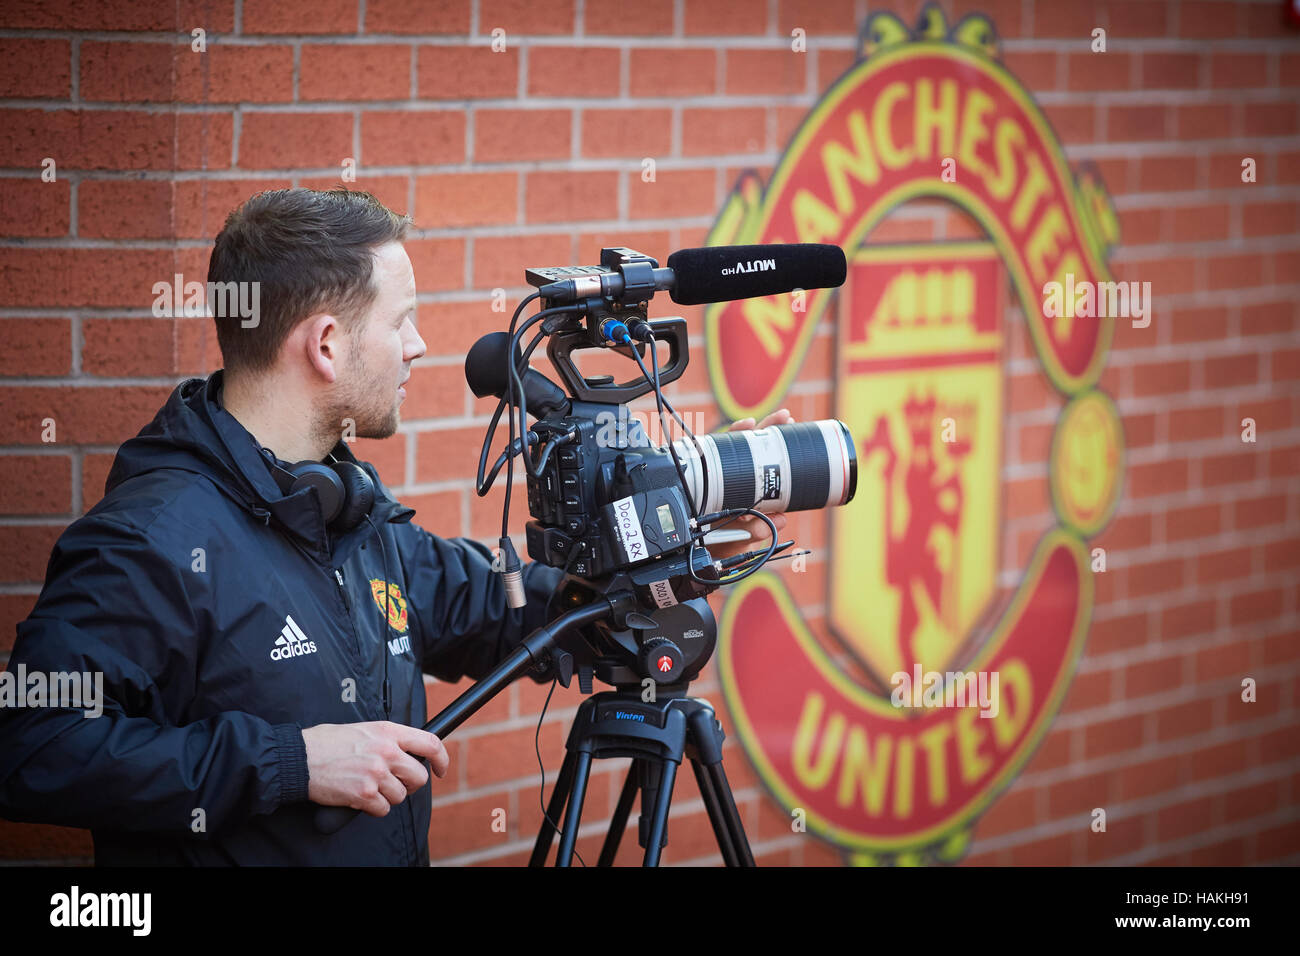 MUFC TV Manchester United filming   in house tv station MUTV filming in Stadium Sporting sports logo managers dugout - Stock Image